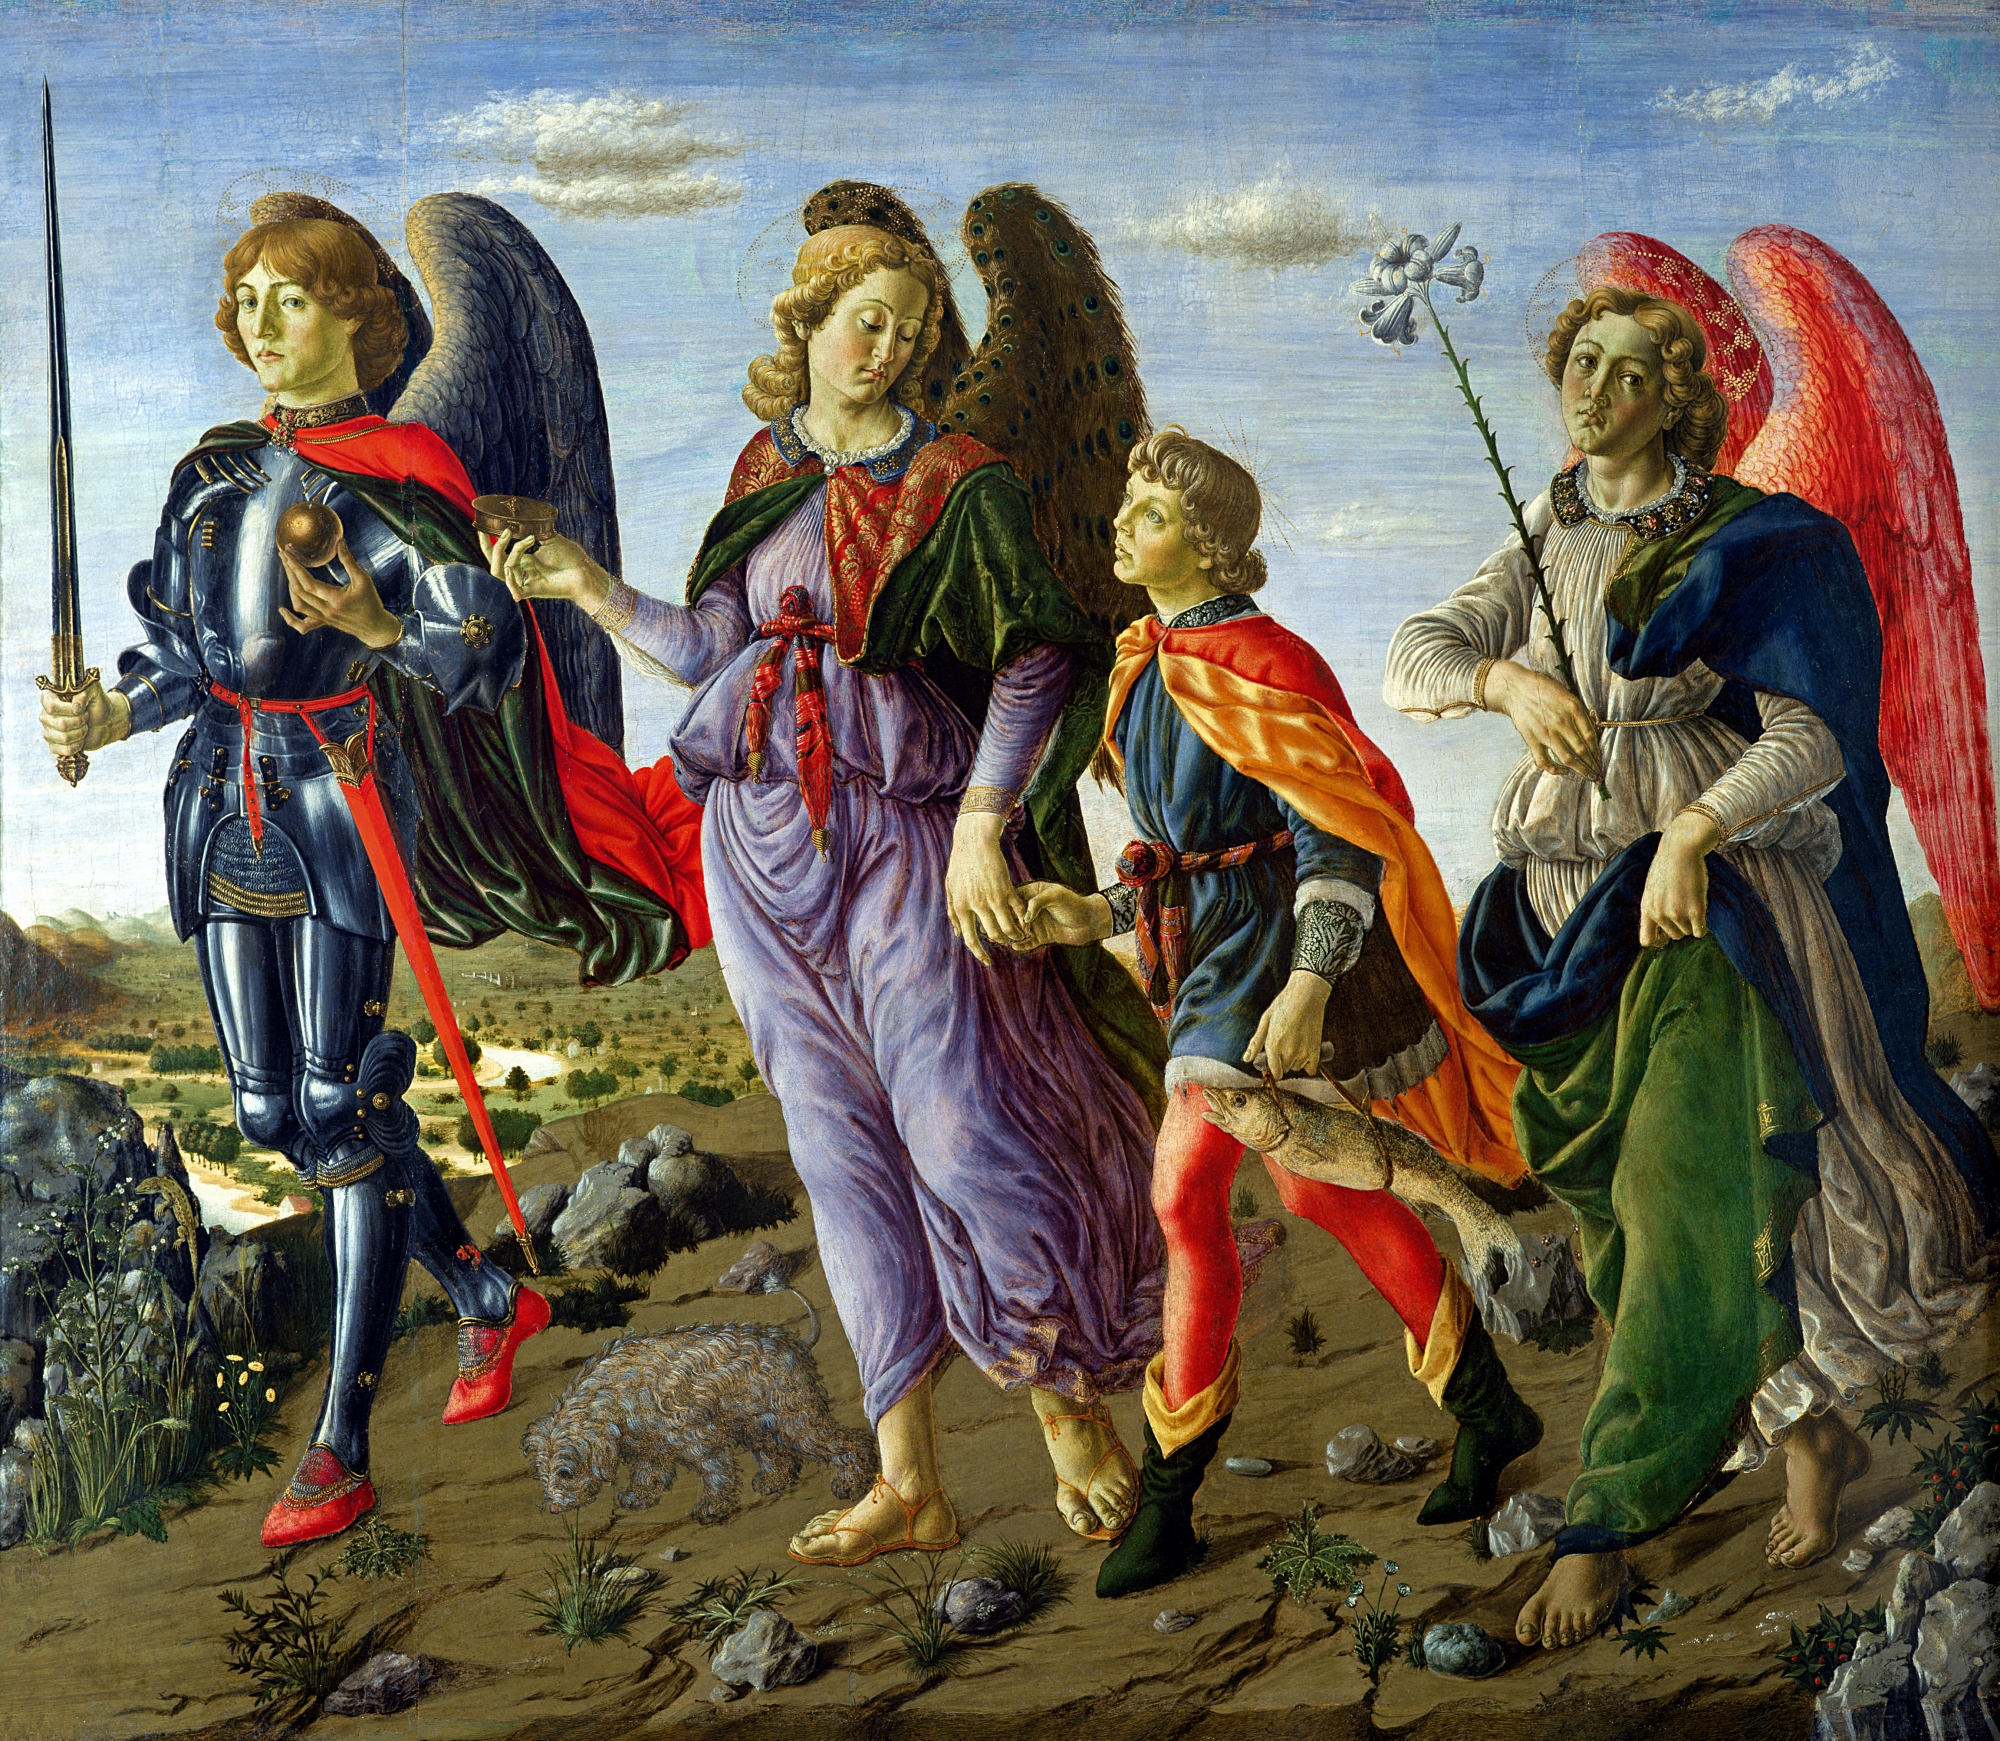 https://upload.wikimedia.org/wikipedia/commons/1/1e/Francesco_Botticini_-_I_tre_Arcangeli_e_Tobias.jpg